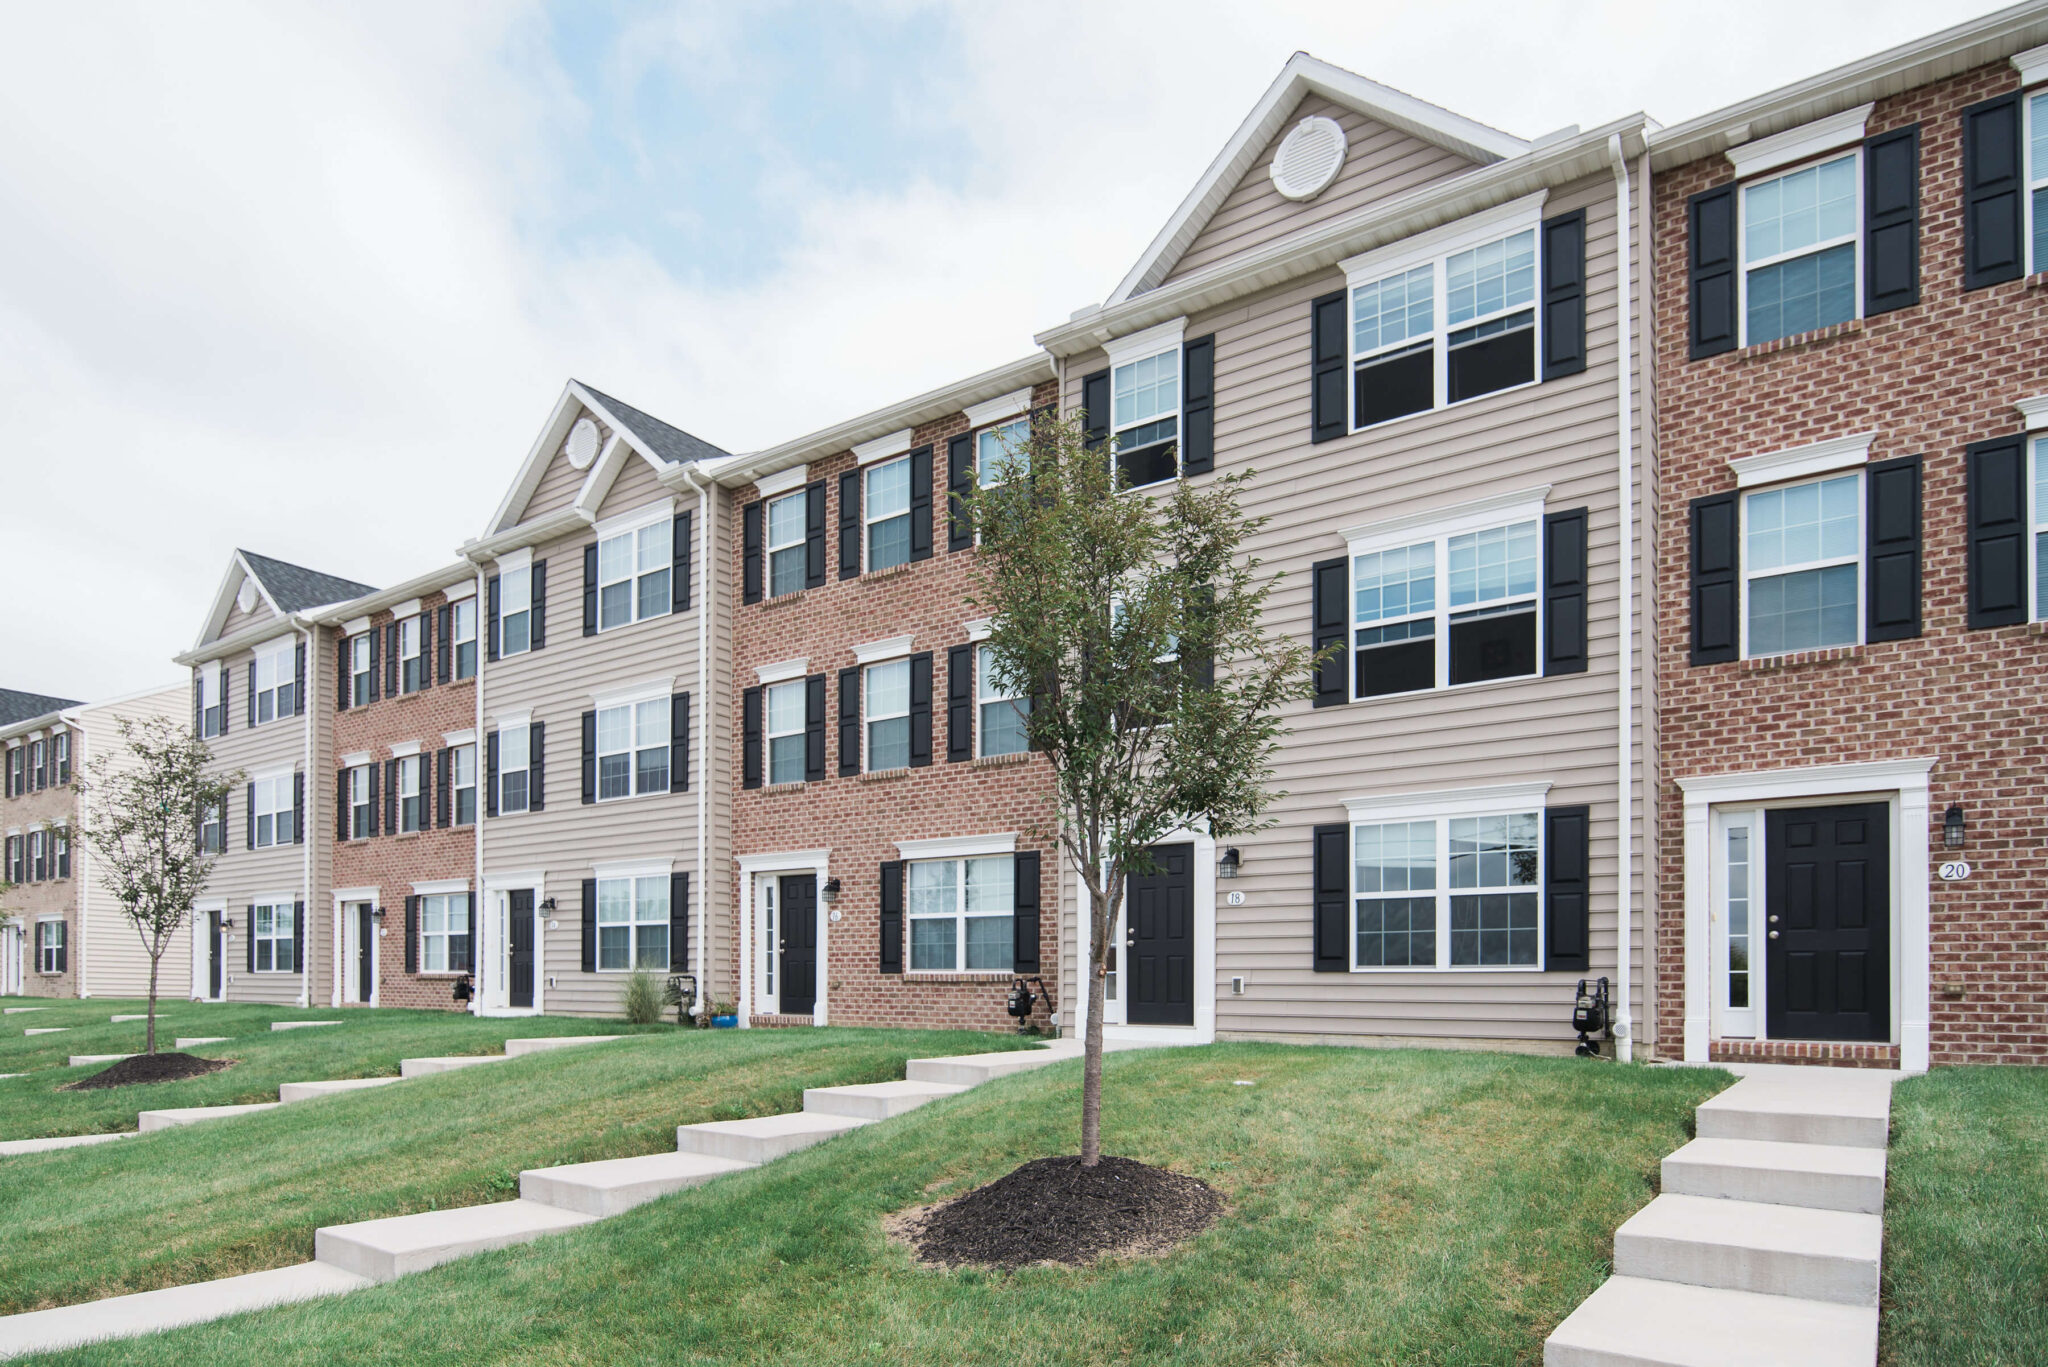 House Rentals In Hanover Pa Burkentine